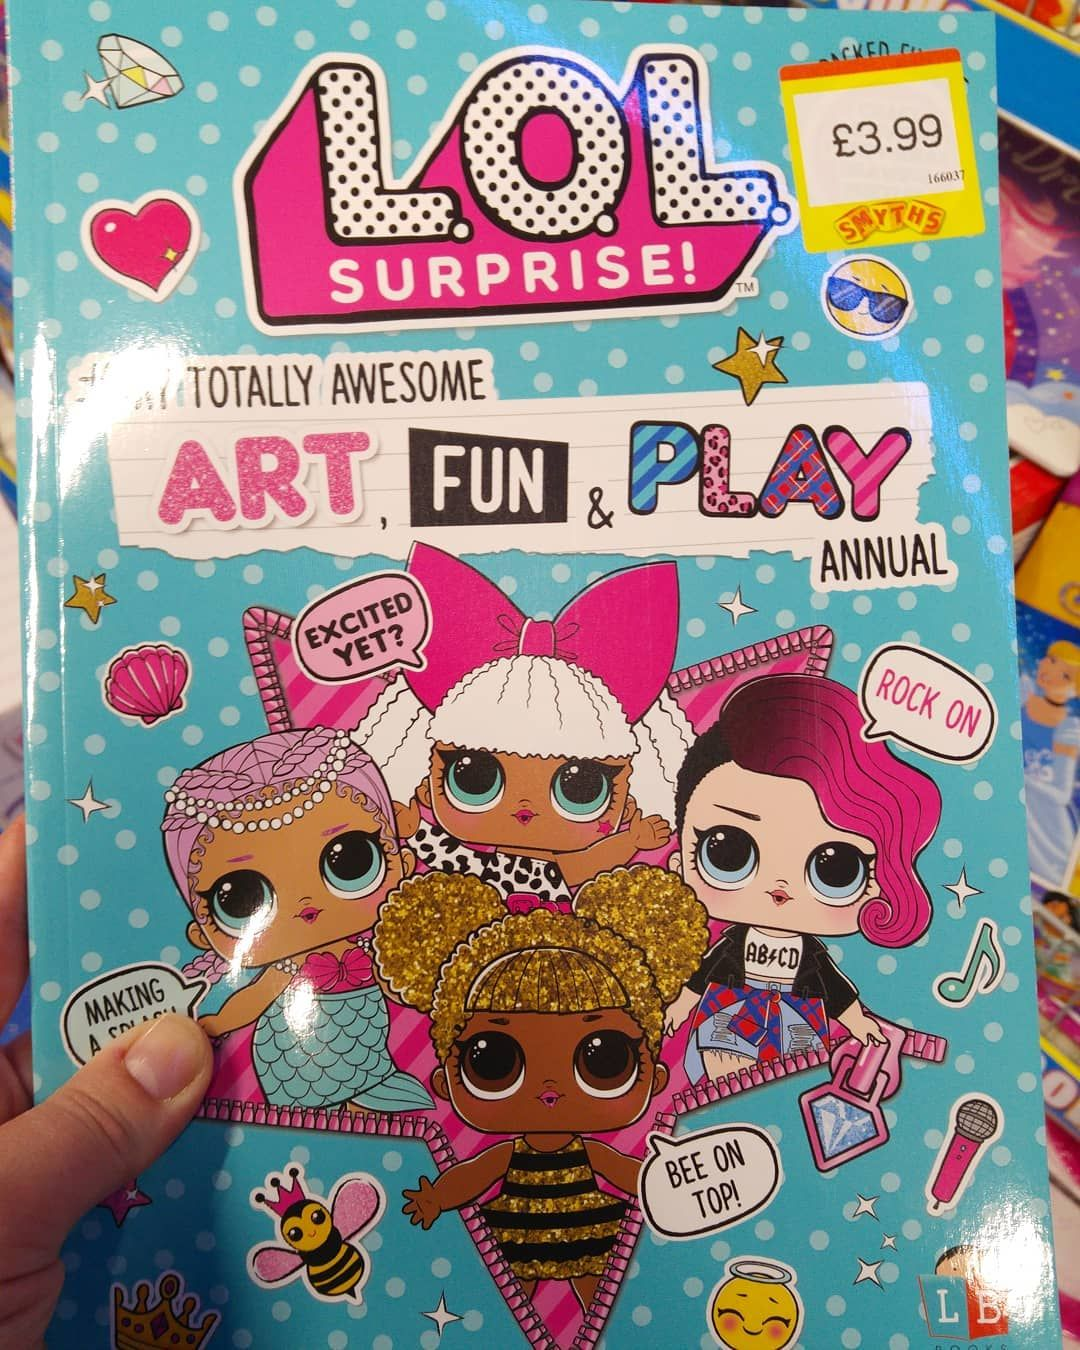 Awesome Lol Activity Book Lolsurprisedolls Lolsuprise Loldoll Book Surprise Activity Fun Kids Coloring Colouring Smyt Lol Lol Dolls Book Activities